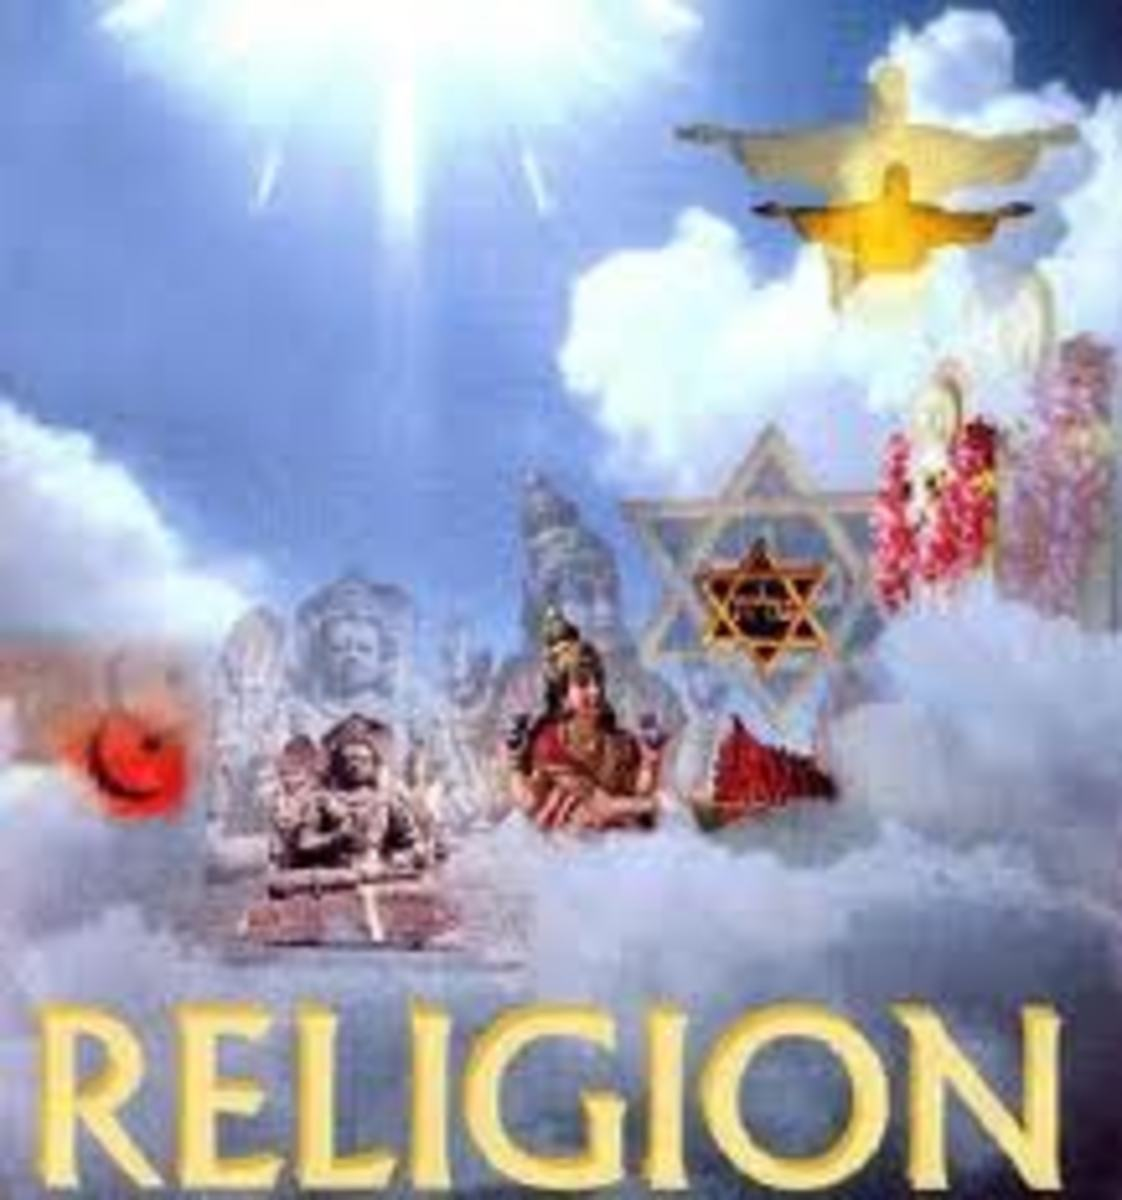 There are many religions in the world, they all have their own beliefs even though they all believe in God, gods and/or spirituality, see our next photo below to see how the main religions are divided up.